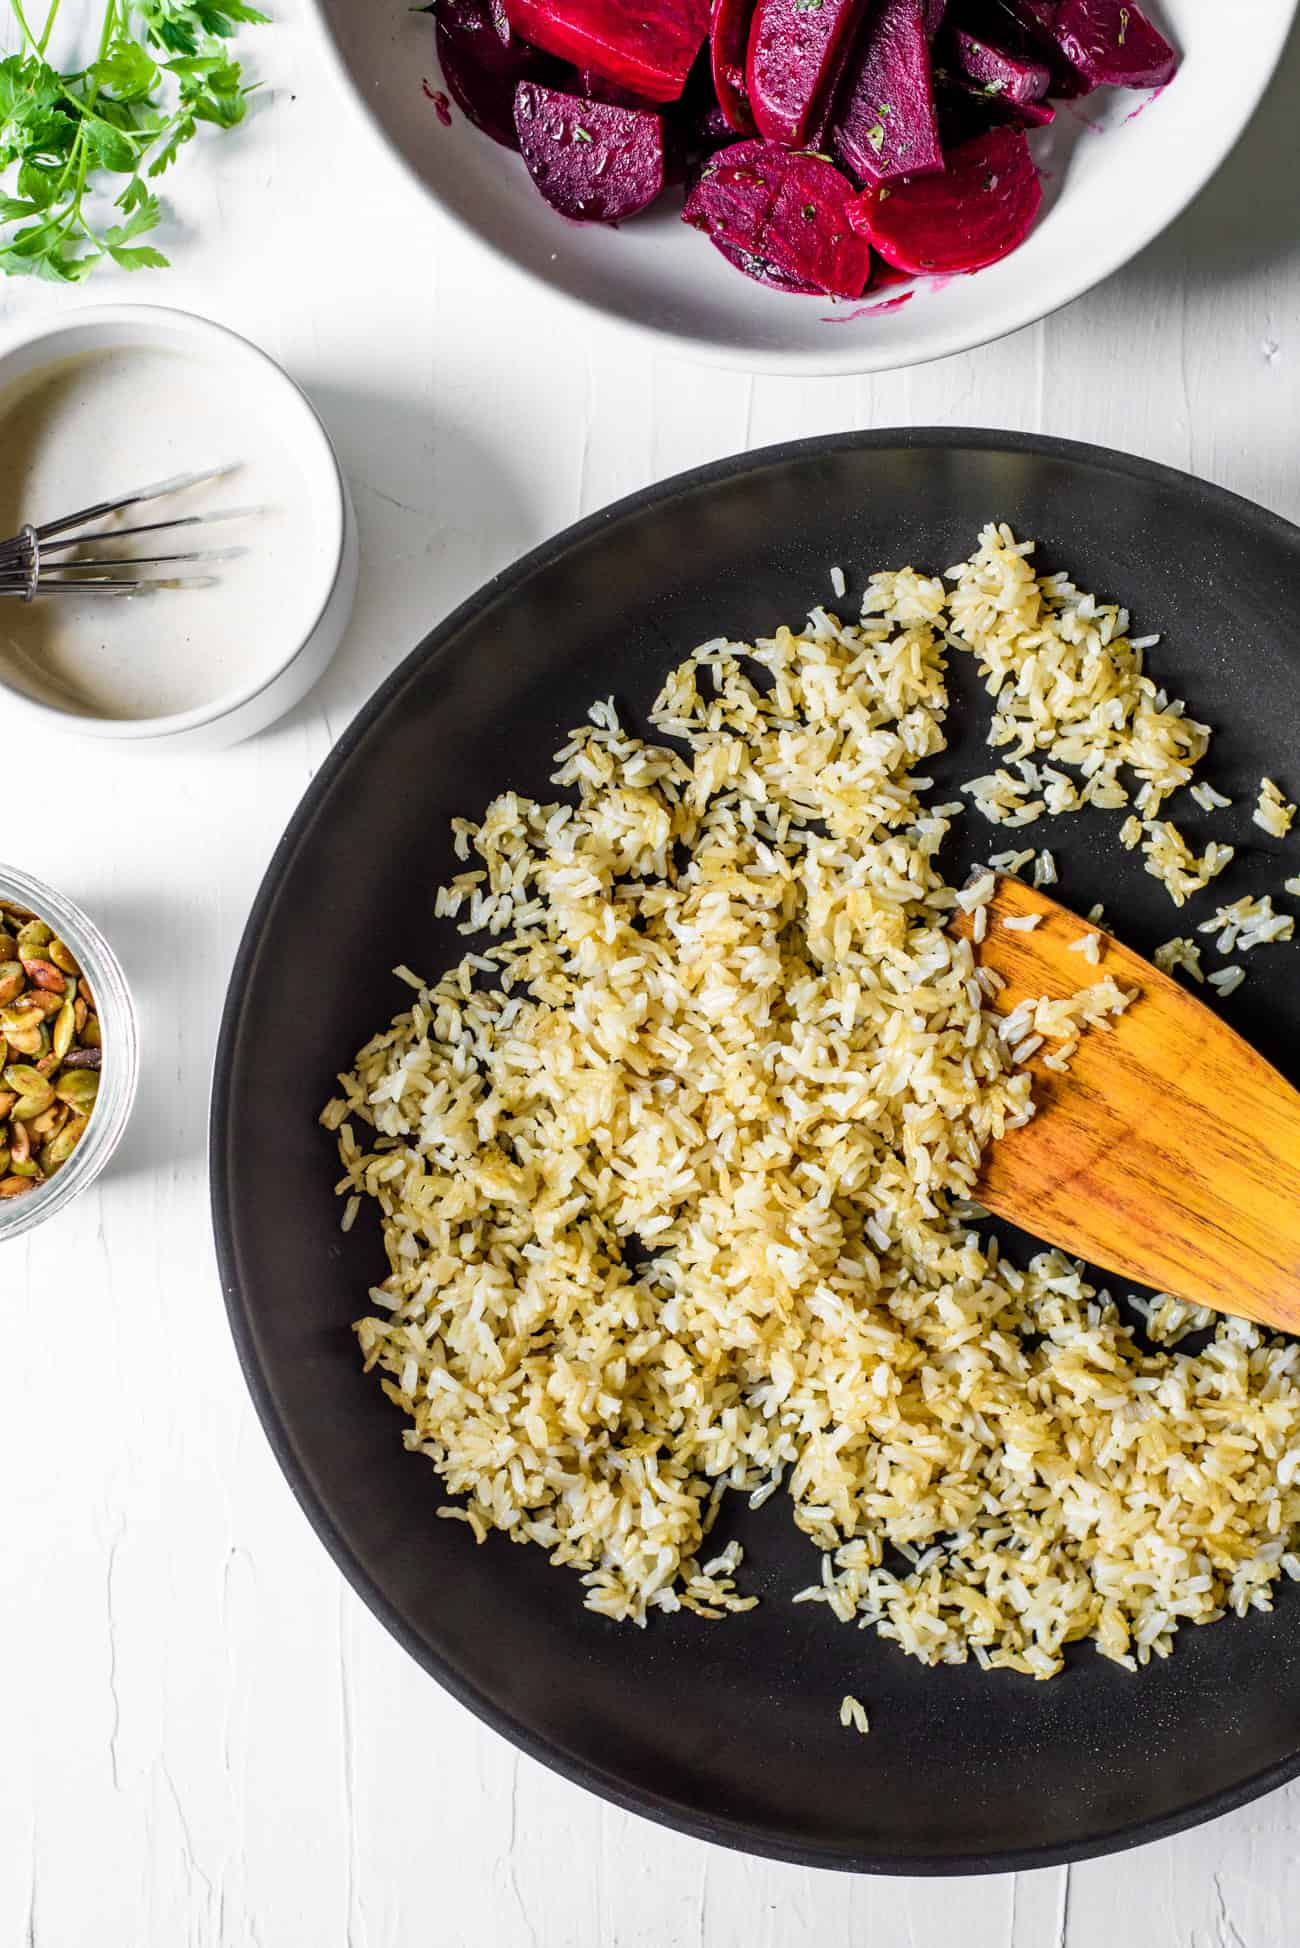 Crispy brown rice in a non-stick skillet